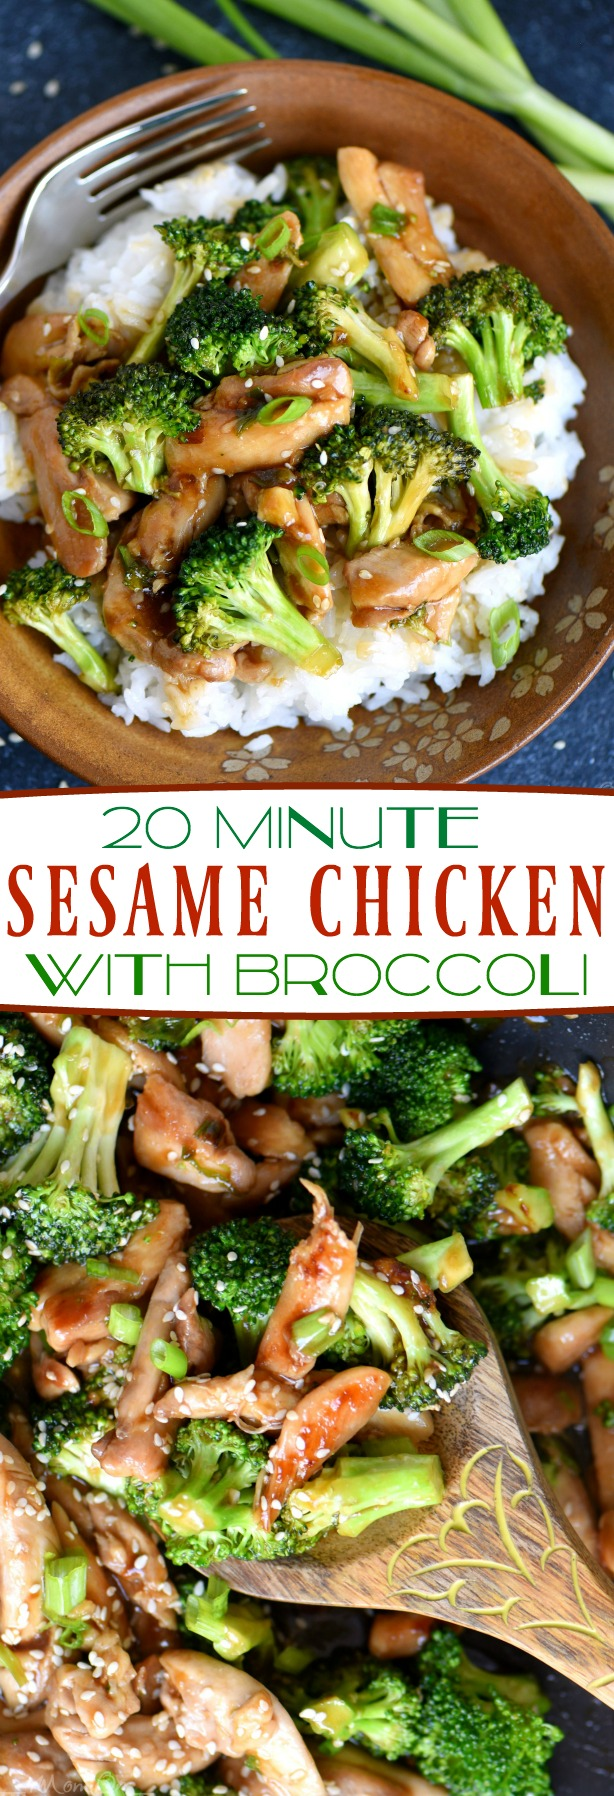 This 20-minute sesame chicken with broccoli will quickly become your favorite dinner! Serve on white or brown rice for a perfect meal! Much better than takeaway food! // Mom waiting time